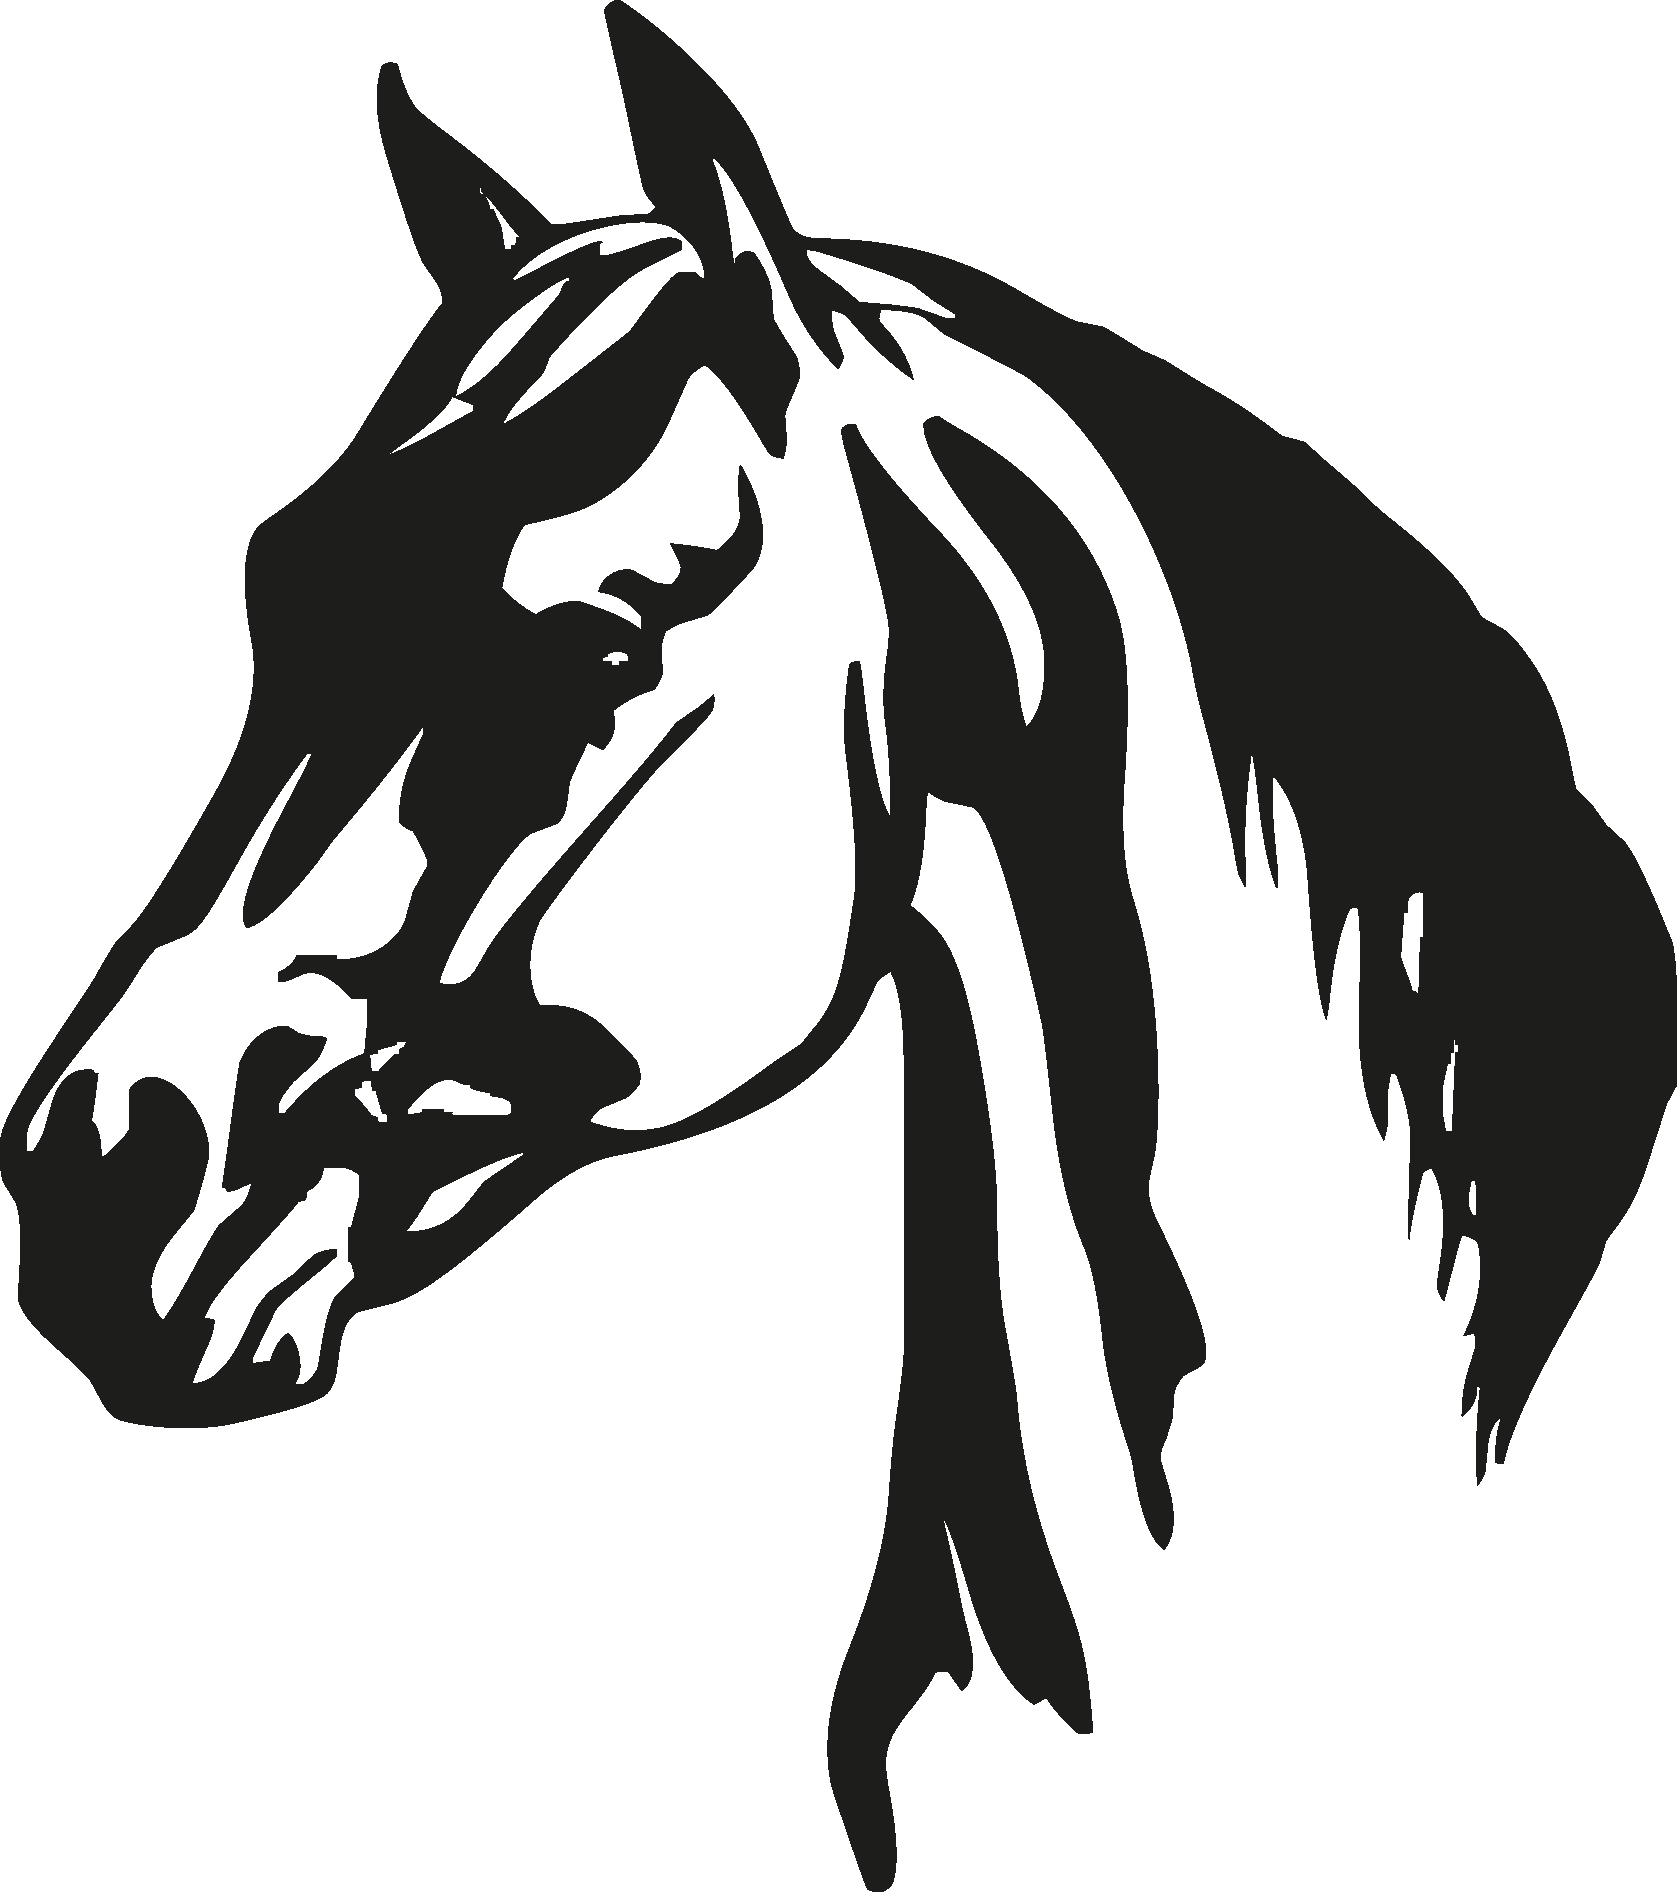 Horse Head Silhouette Png Image Horse Silhouette Horse Head Horses